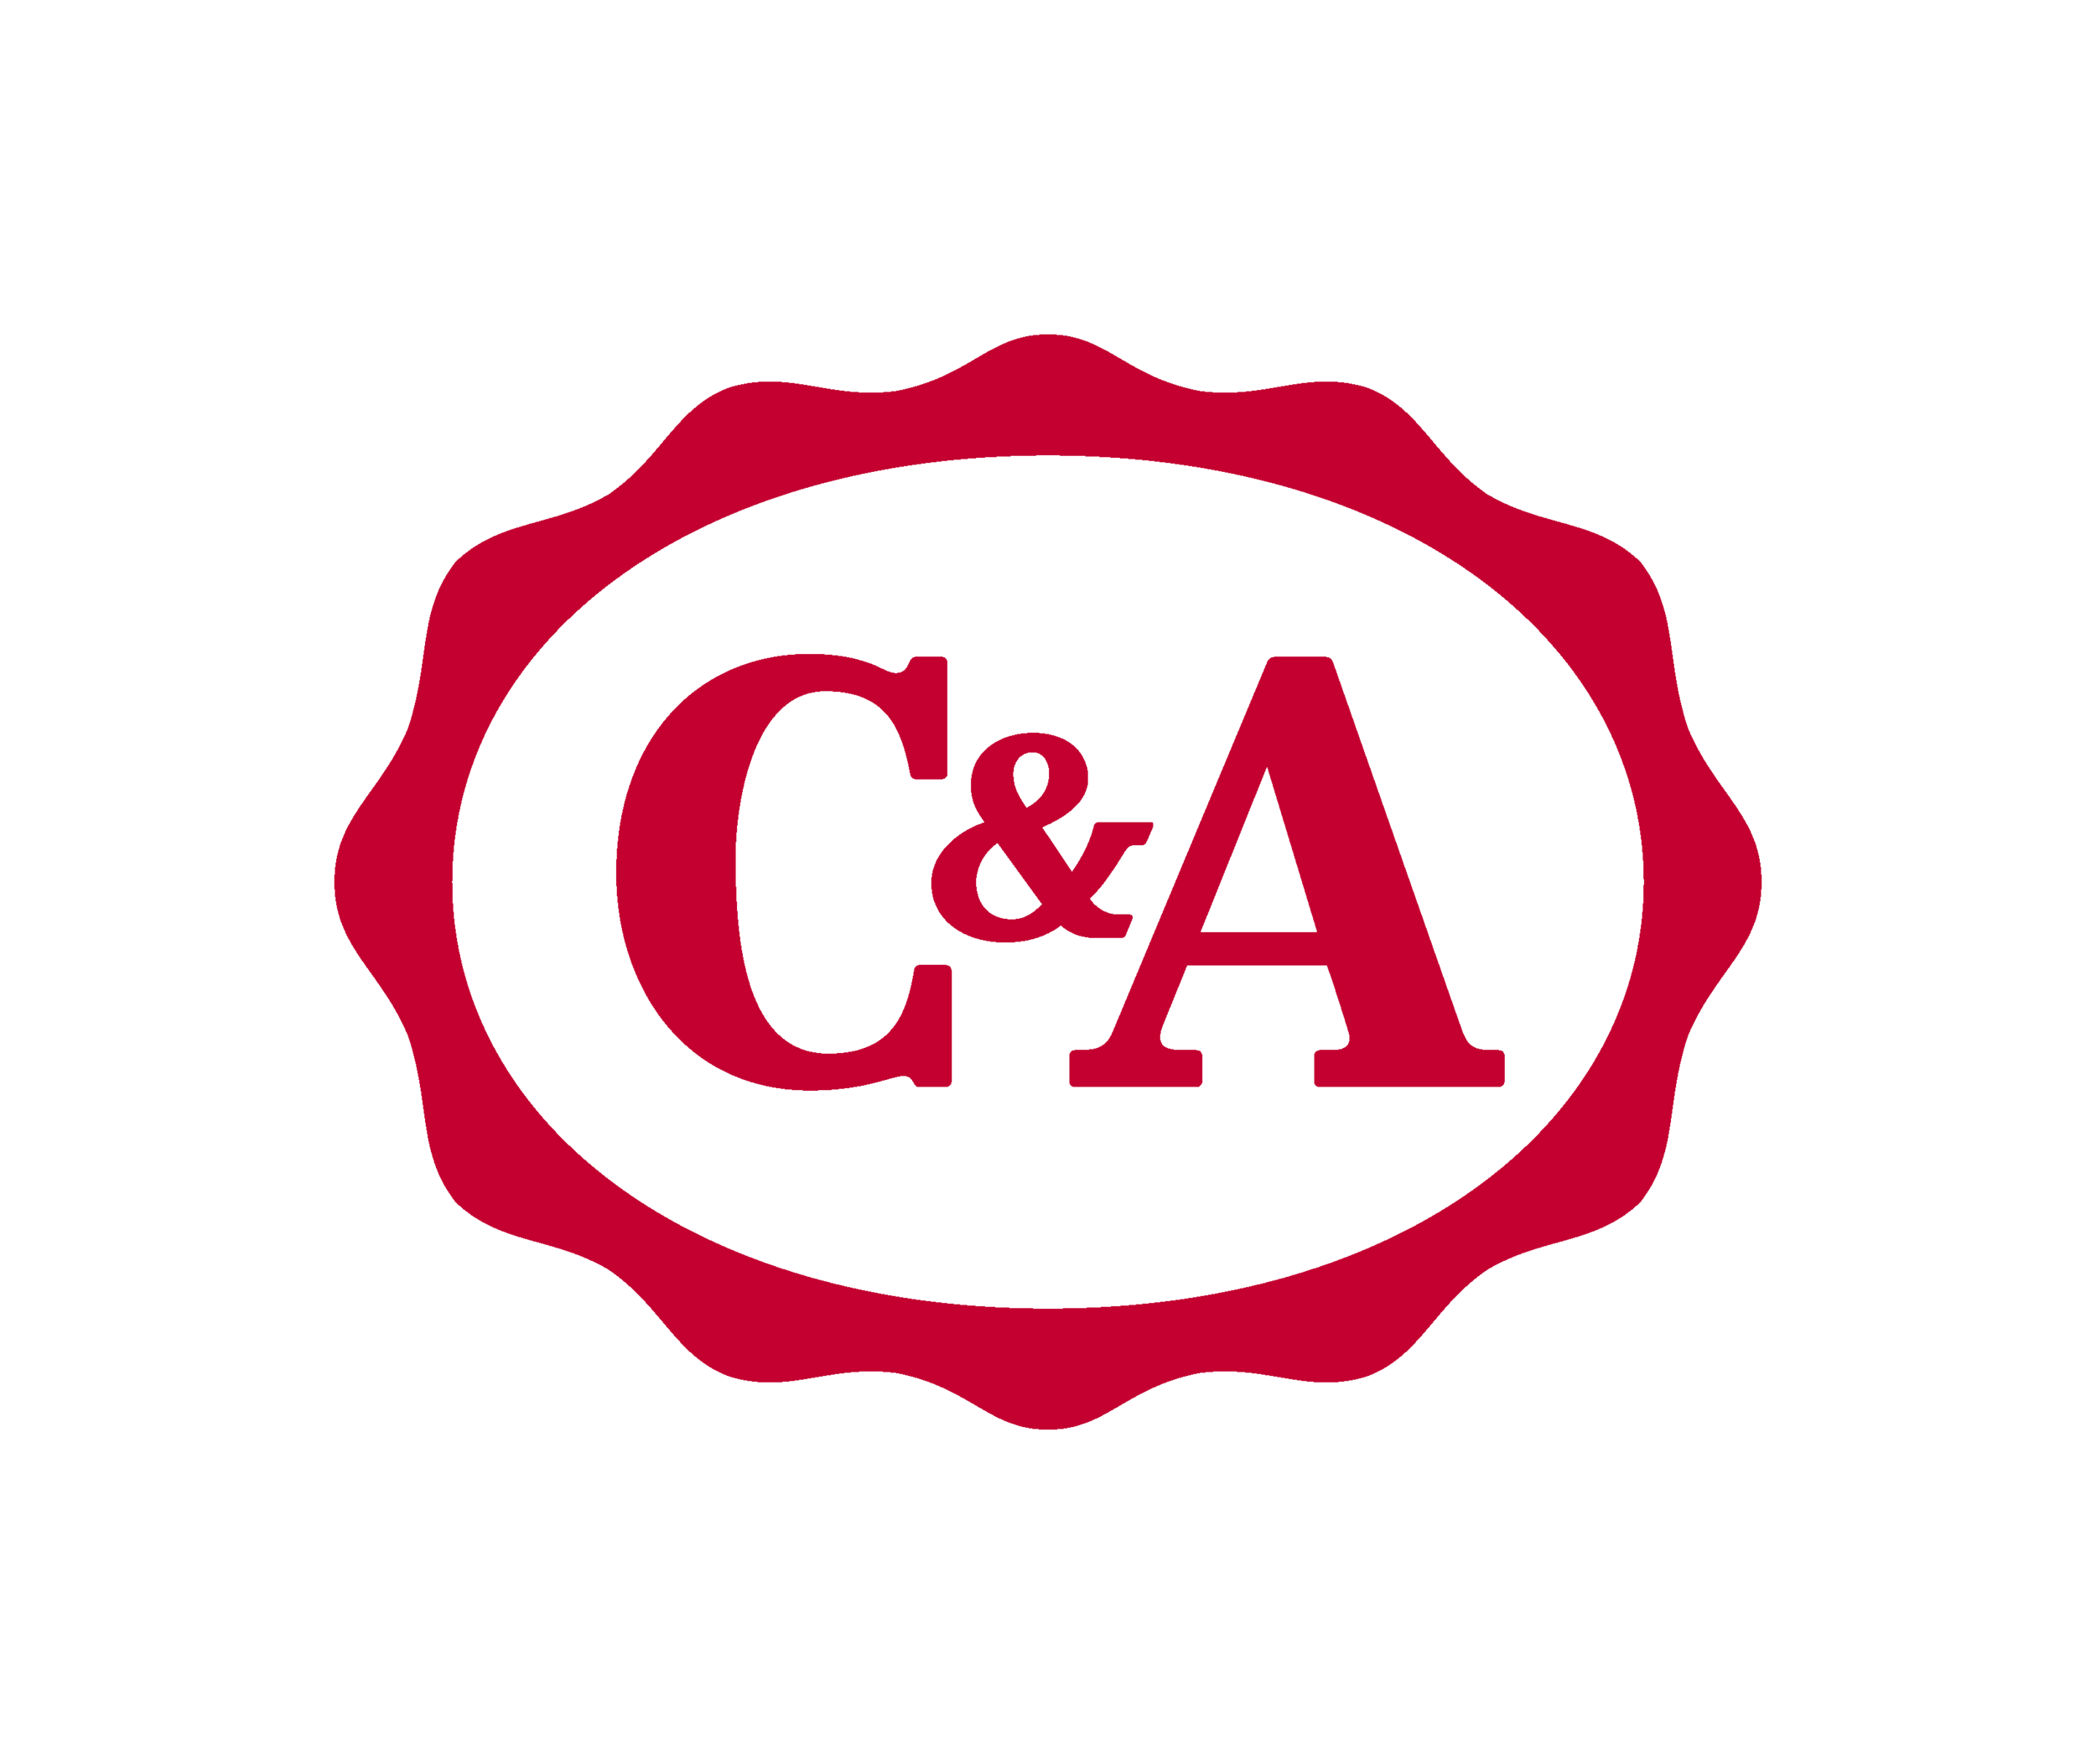 C_and_A_logo_02_RGB2400_colour.png